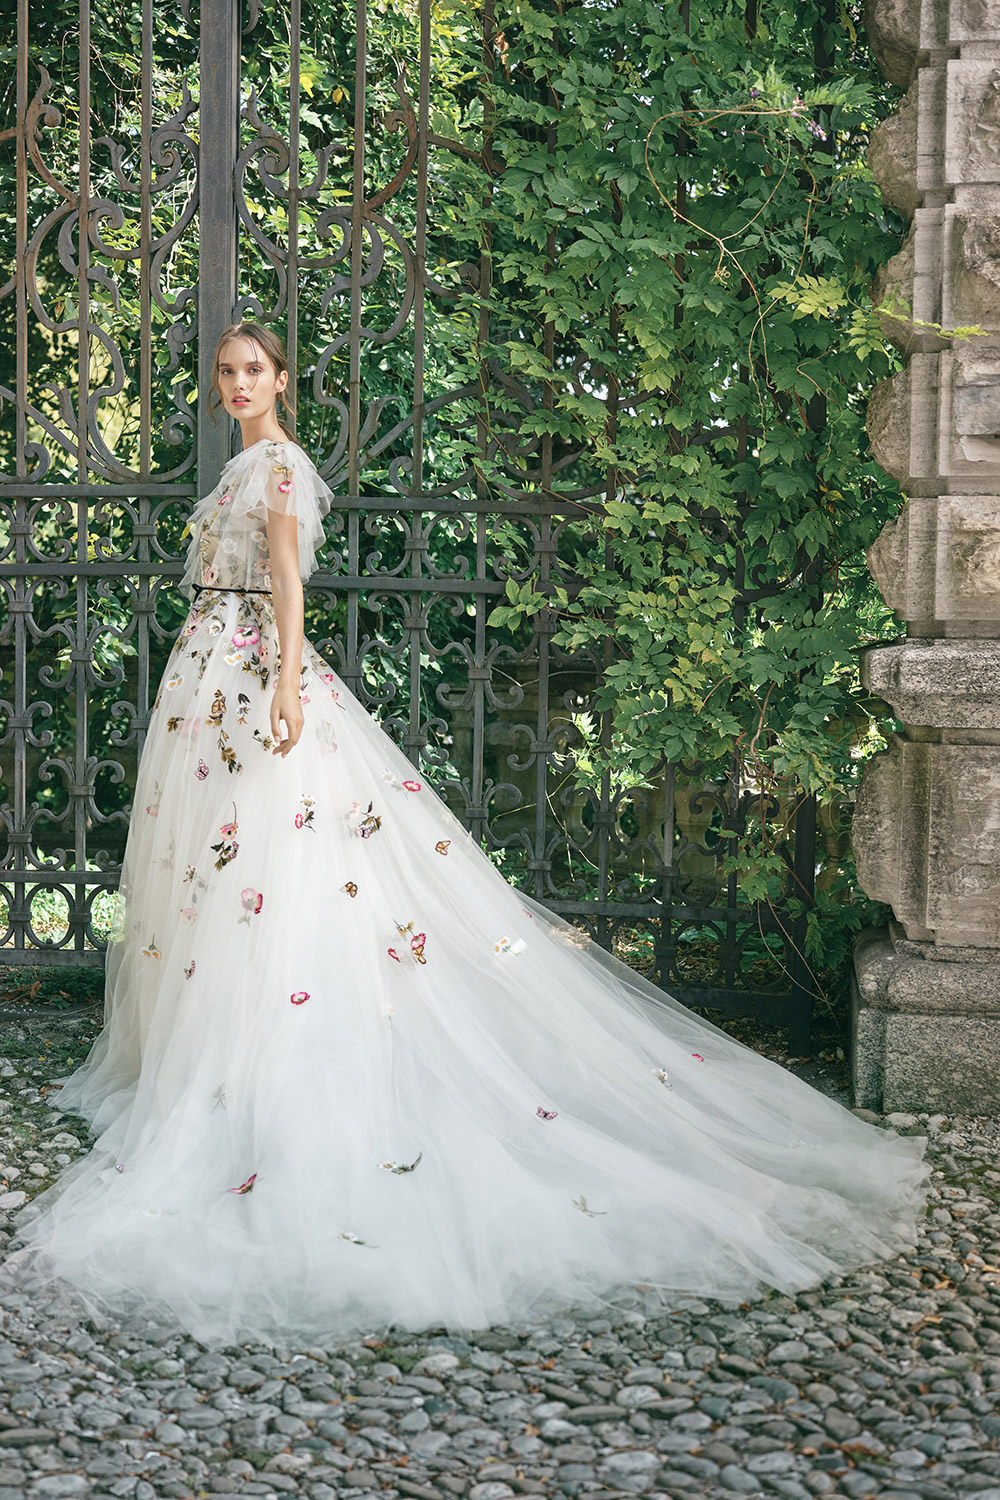 Wonder - Monique Lhuillier Fall 2020 Bridal Collection. www.theweddingnotebook.com